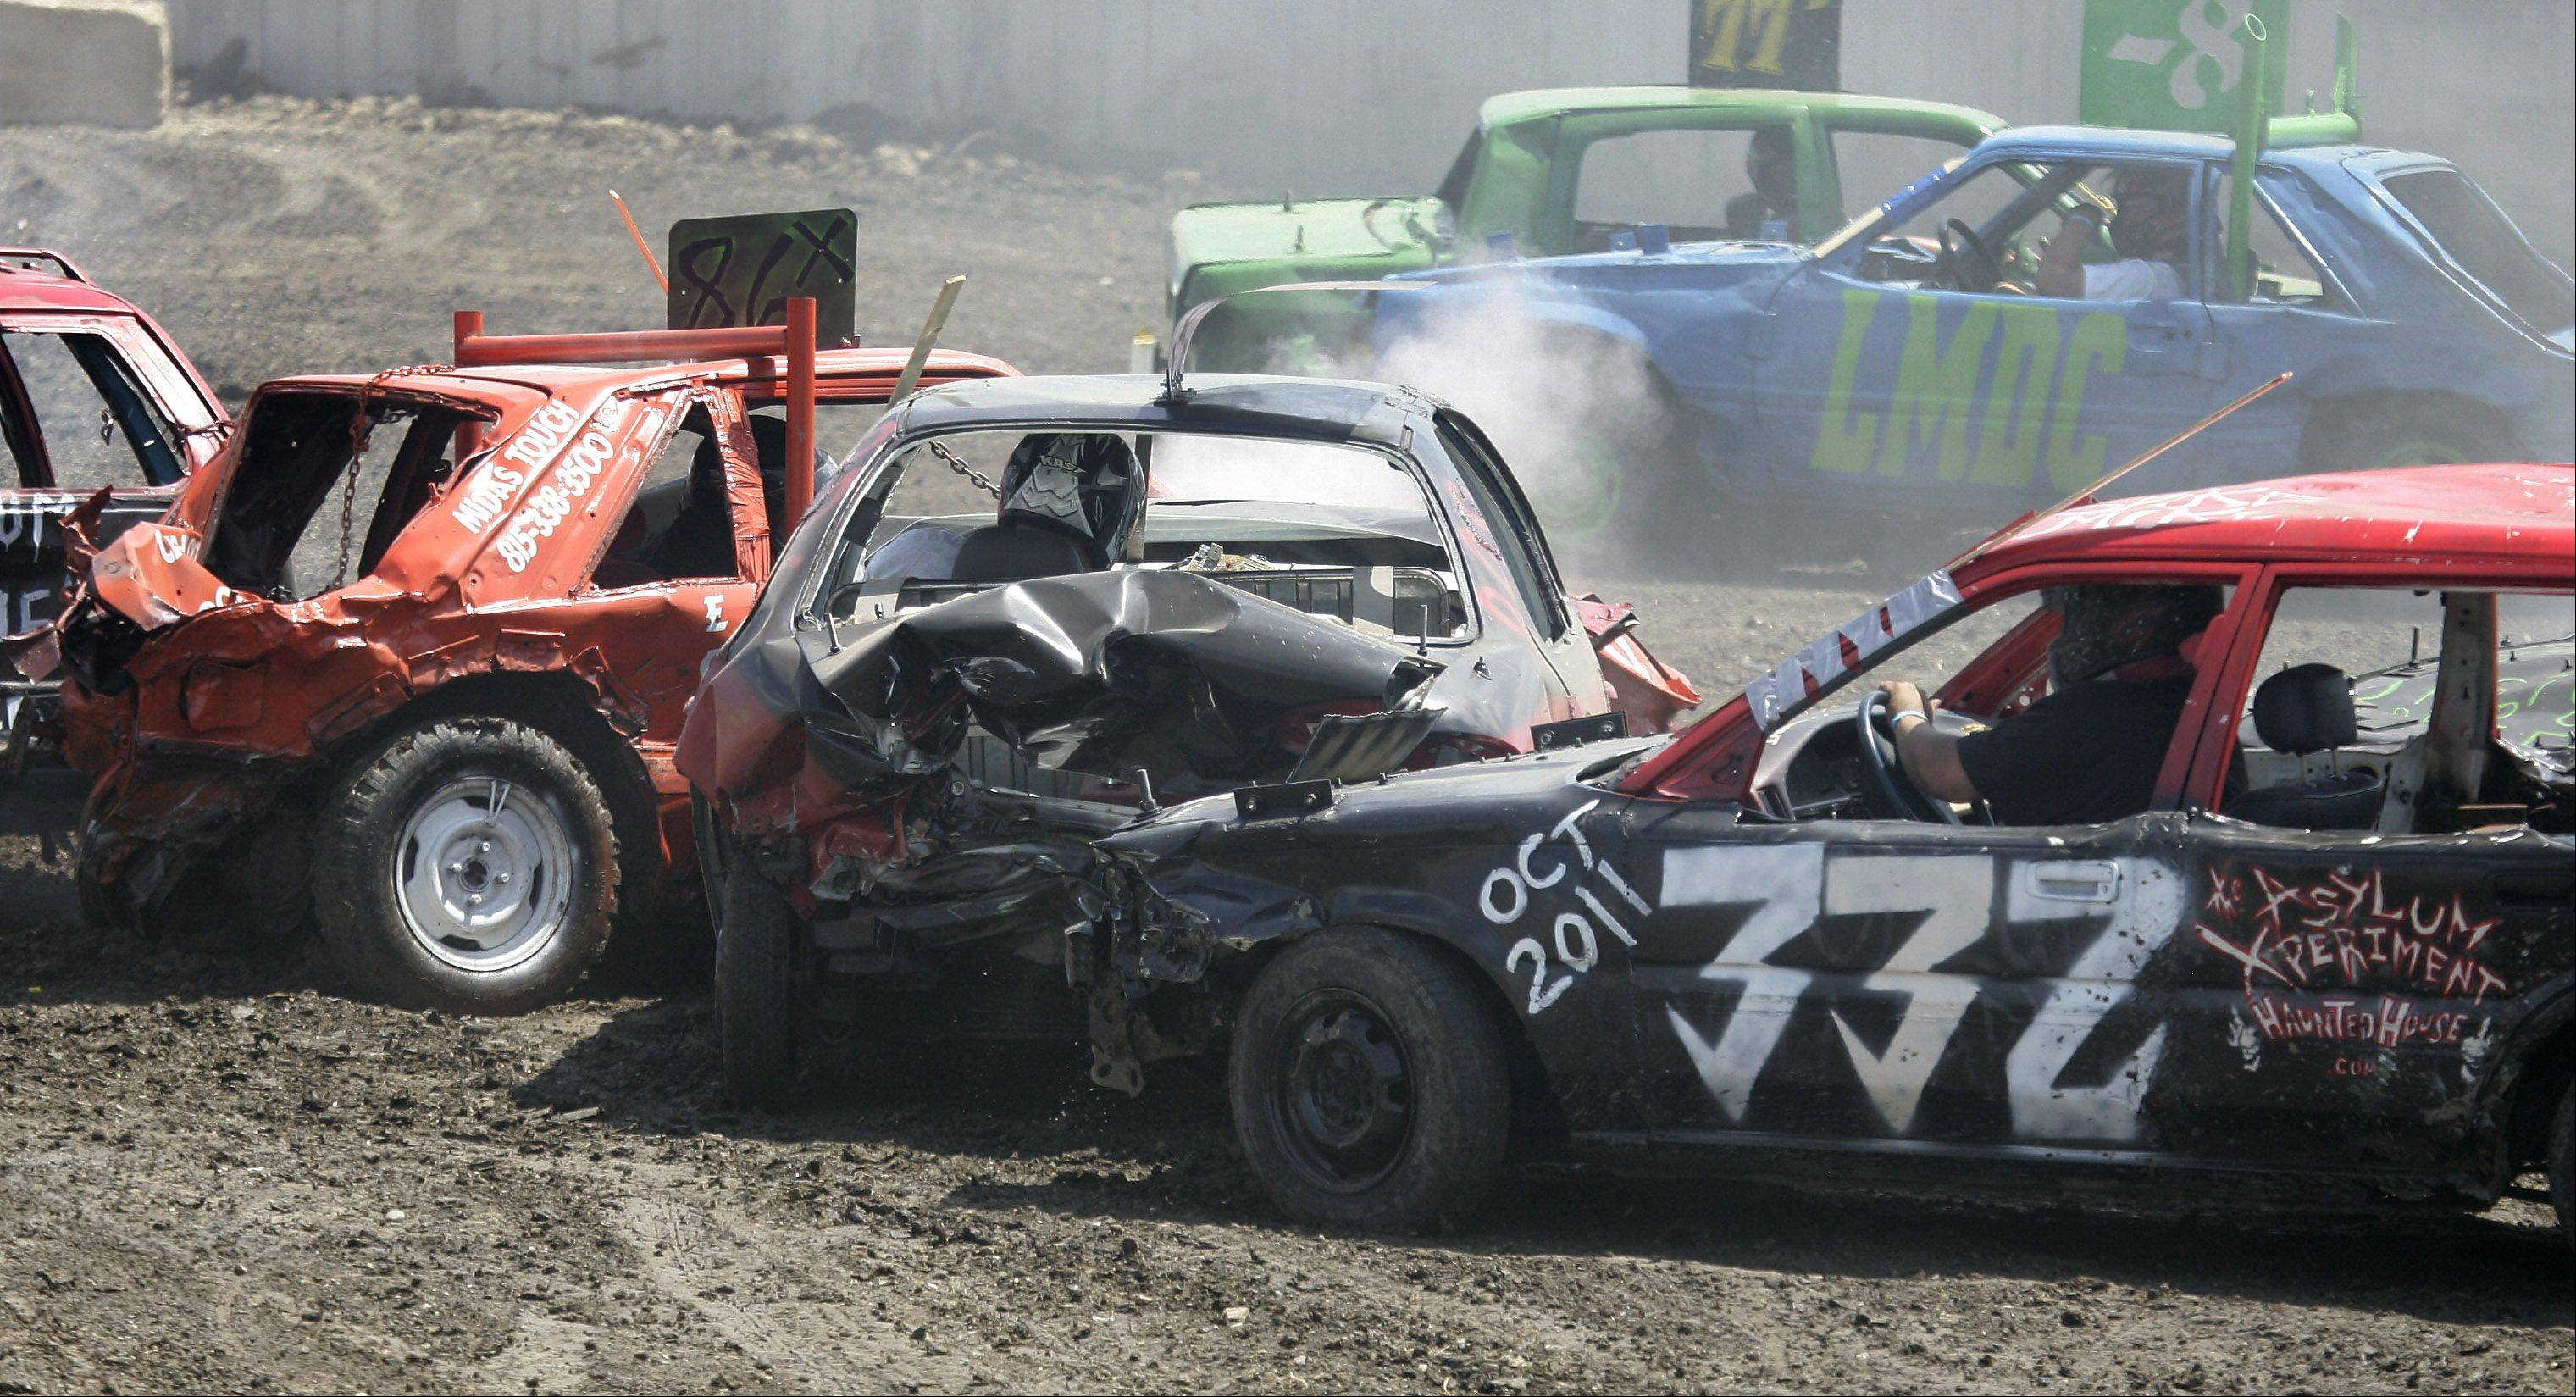 Gilbert R. Boucher II/gboucher@dailyherald.com, 2011A demolition derby is on tap again this year at the Lake County Fair in Grayslake.